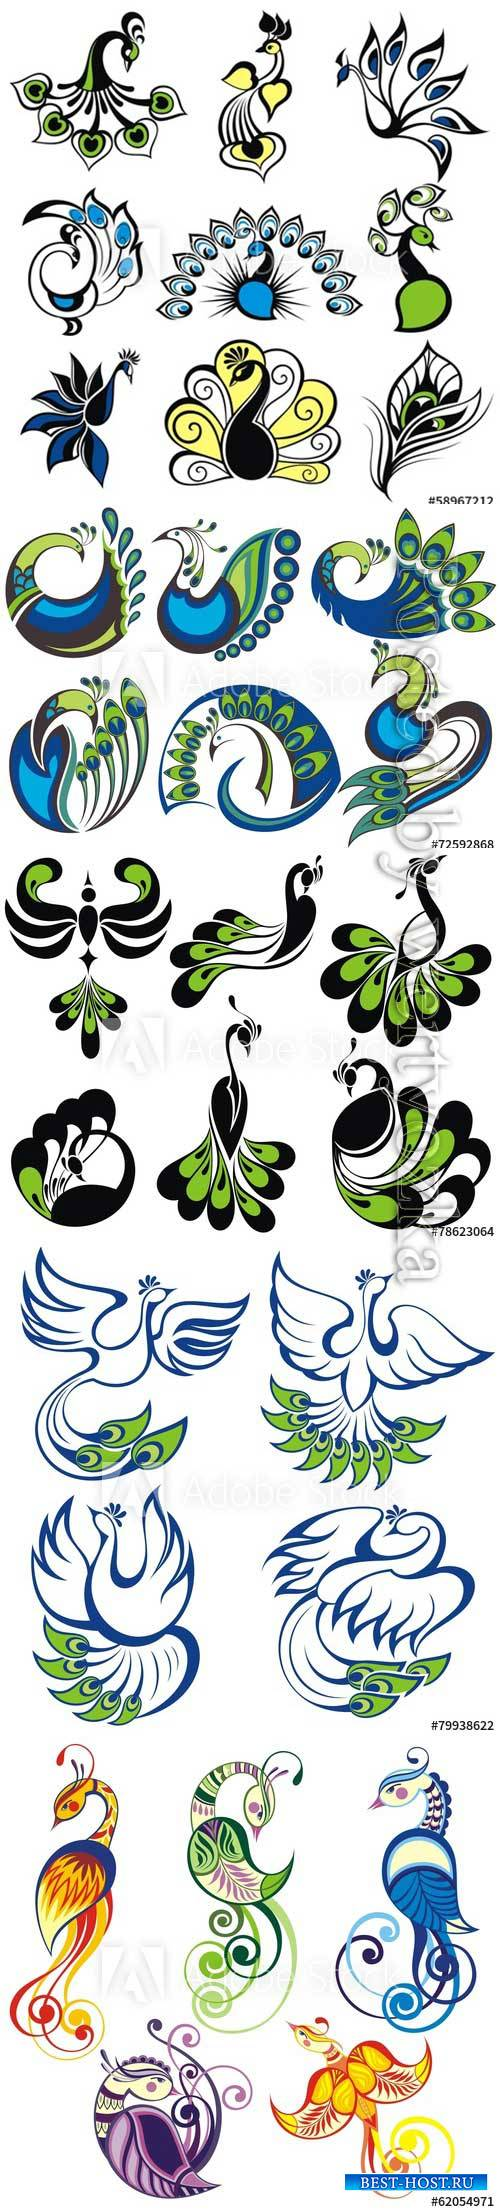 Birds icons, peacock vector birds